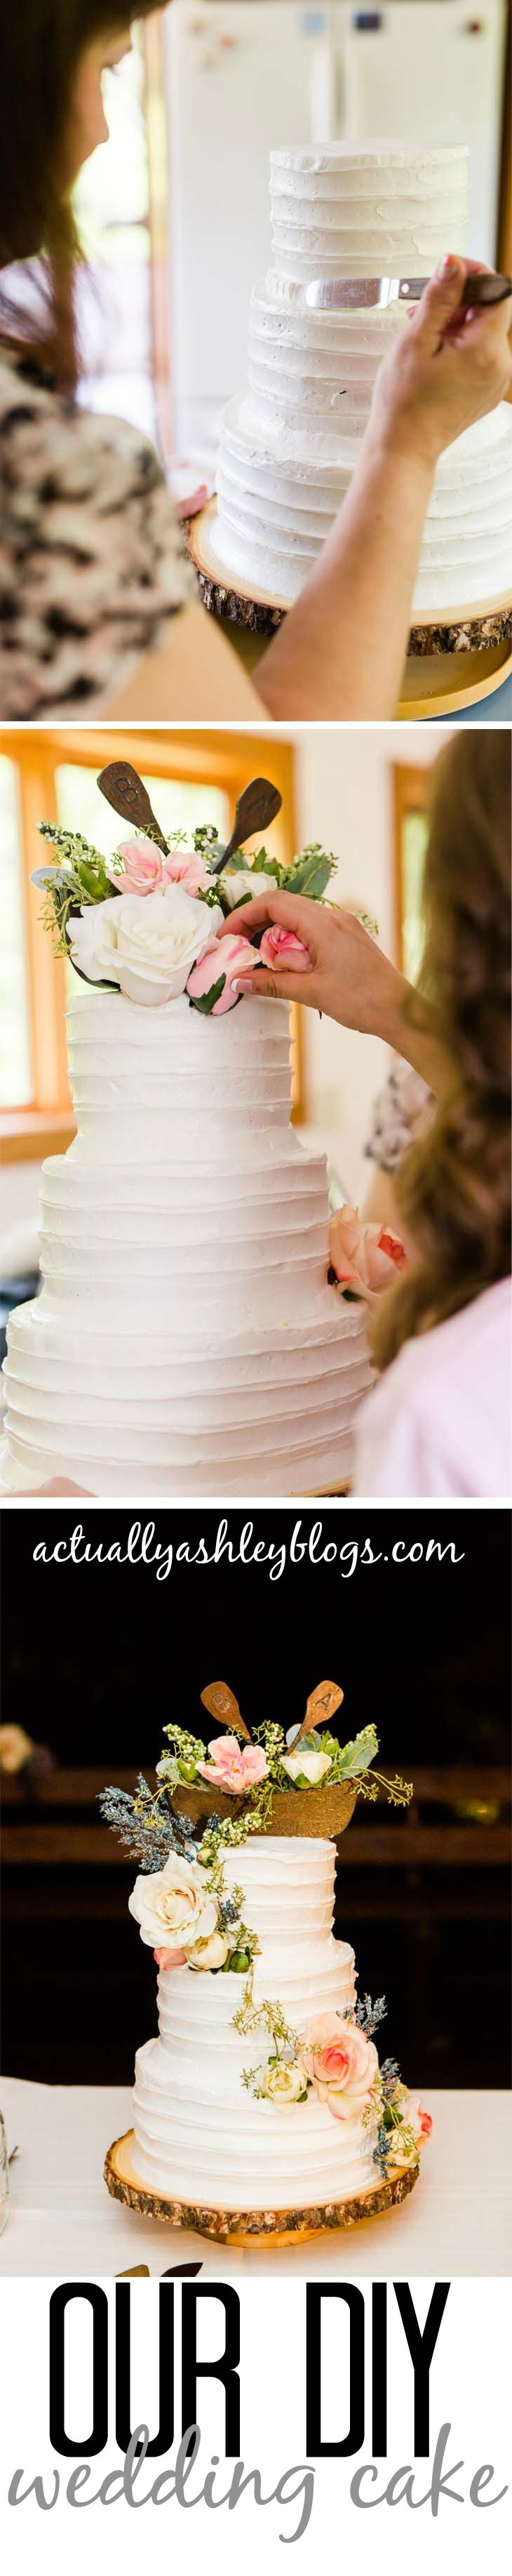 Classic wedding cake design with cascading floral cake decor. Rustic features like a homemade wood canoe cake topper, and raw wood slice cake stand combine a classic wedding cake with DIY rustic flair.